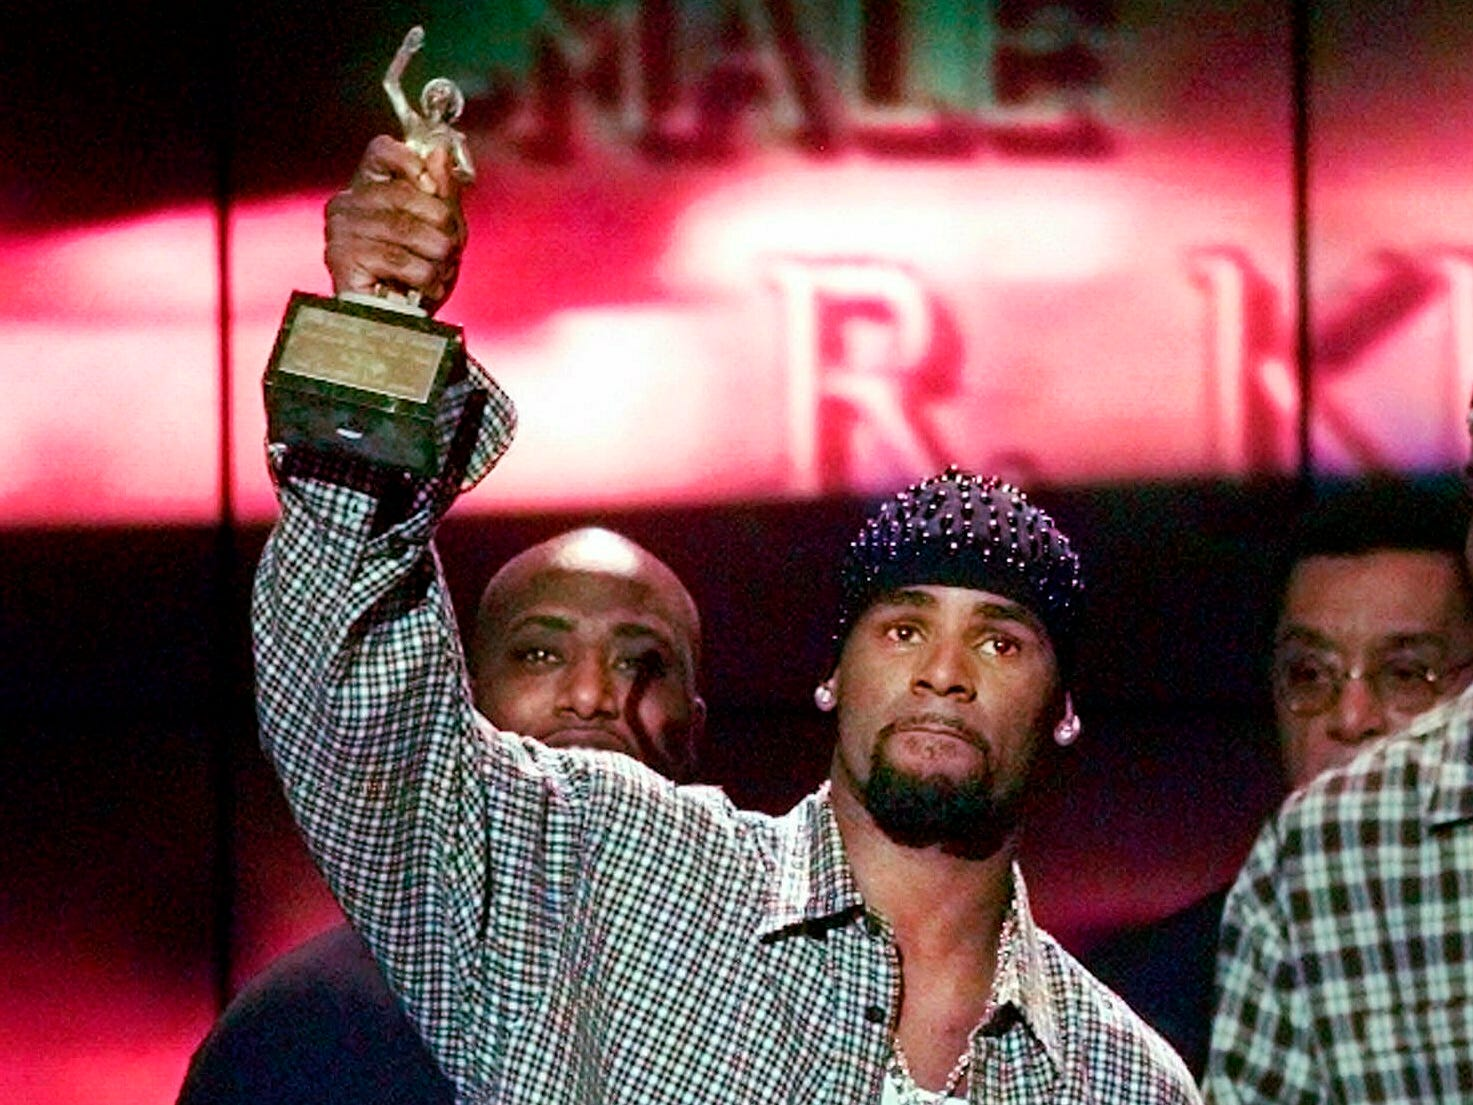 """R. Kelly accepts the Sammy Davis Jr. Award for Male """"Entertainer of the Year"""" at the 13th annual Soul Train Music Awards in Los Angeles on March 26,1999."""